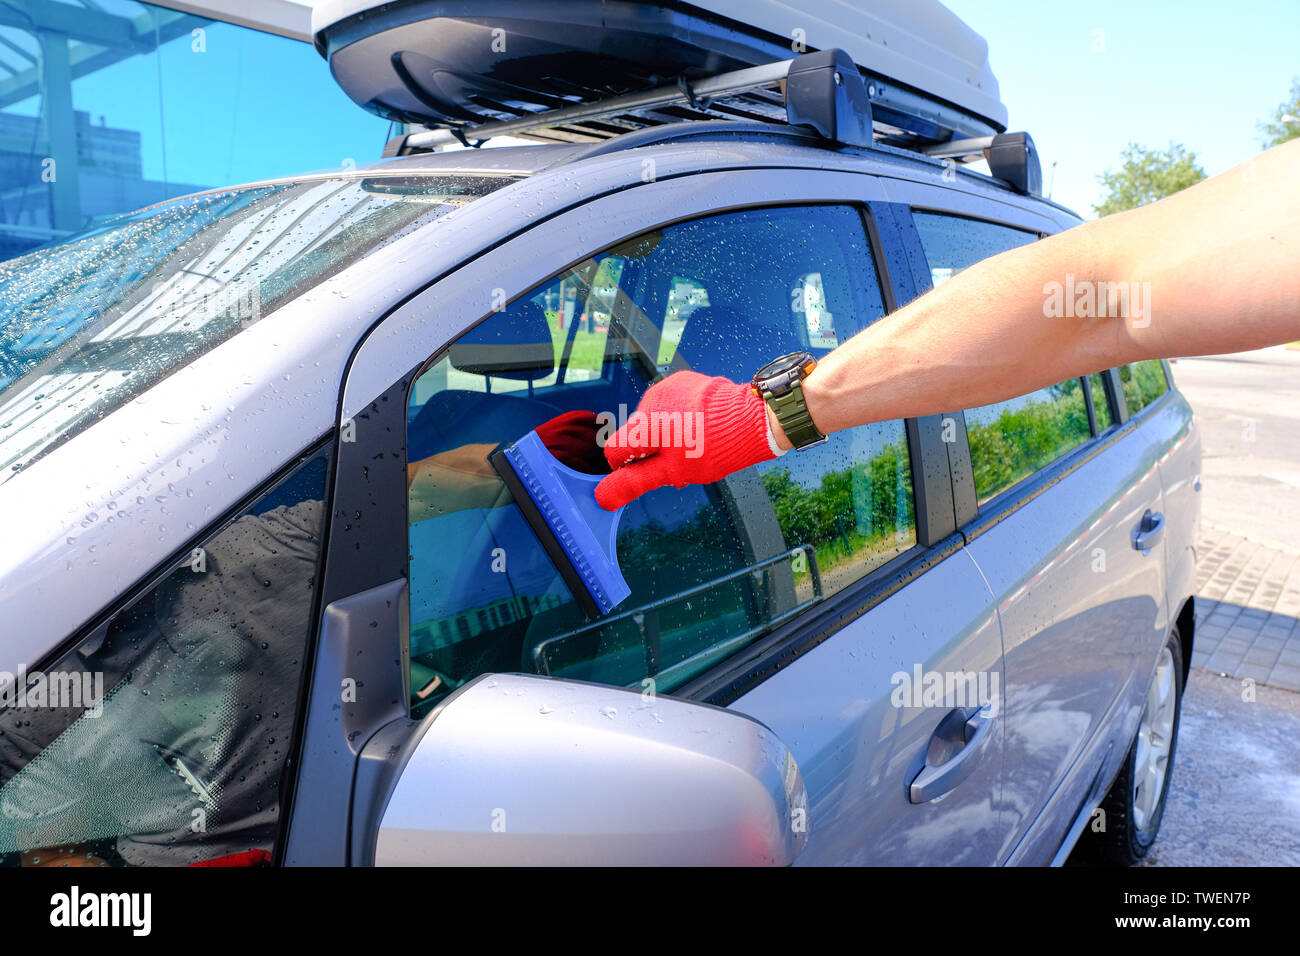 A man with a rubber scraper removes the remains of water from the glass after washing the car. Car wash. Self-service washing complex. High pressure c Stock Photo